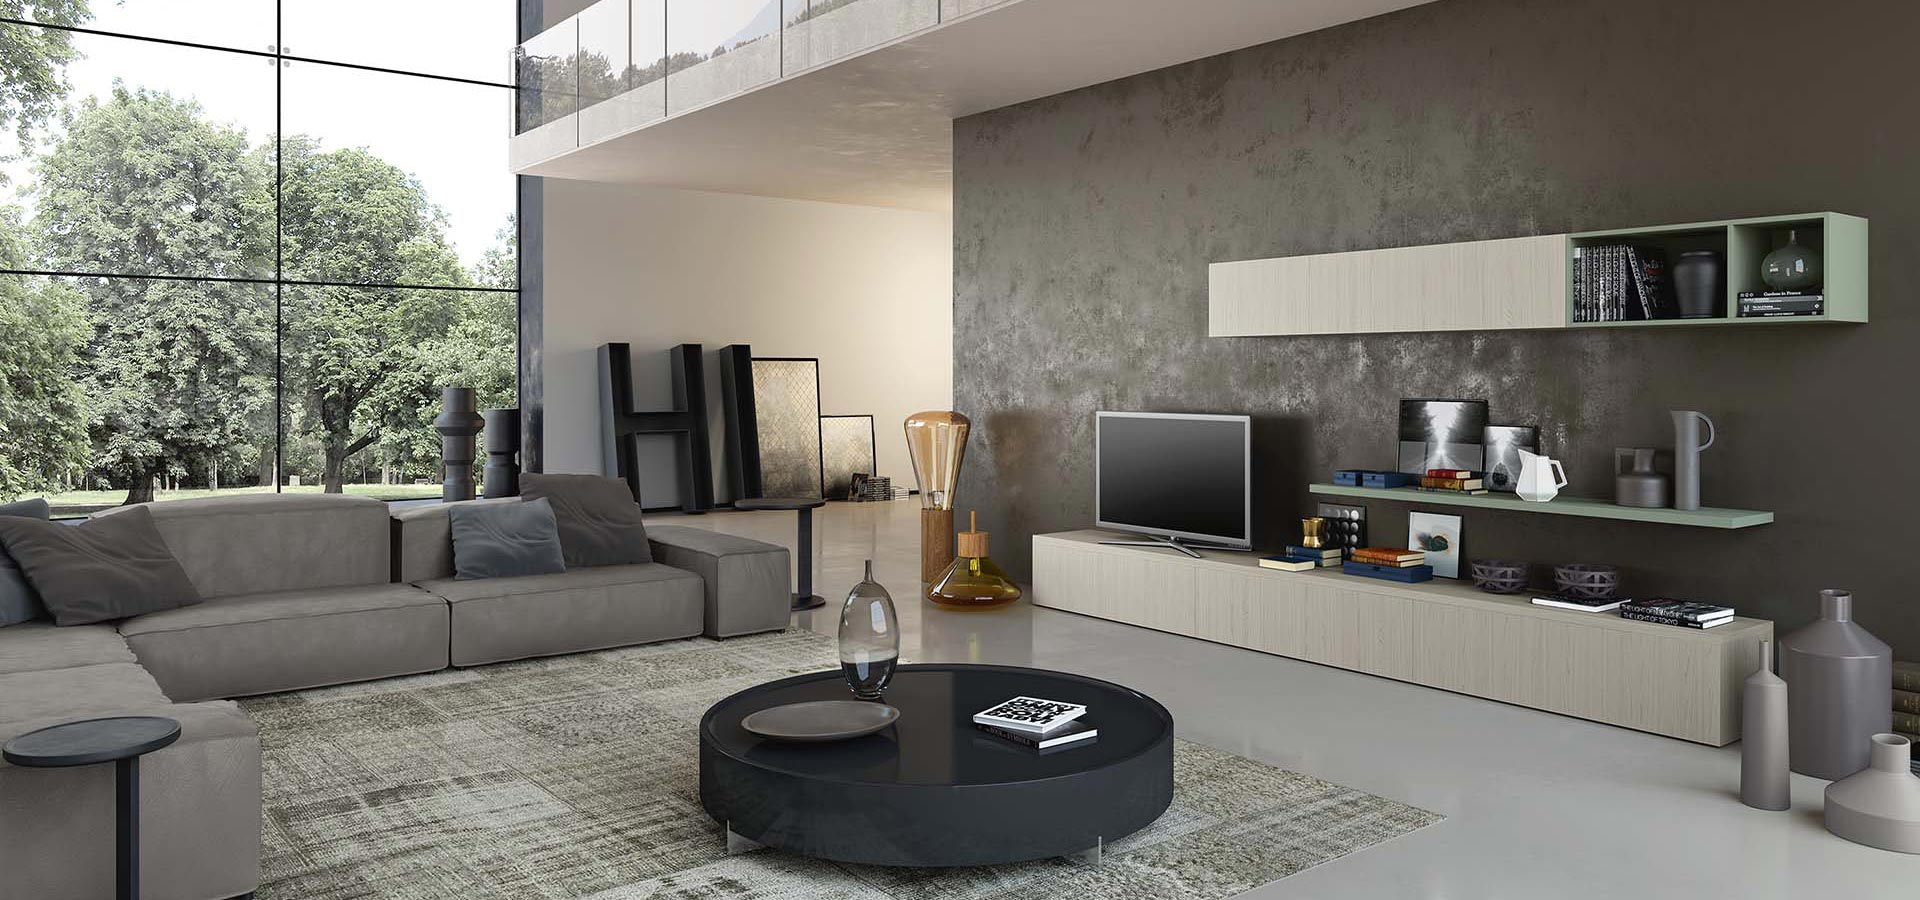 Wega 14 living room tv stand arredo3 for Muebles de living modernos